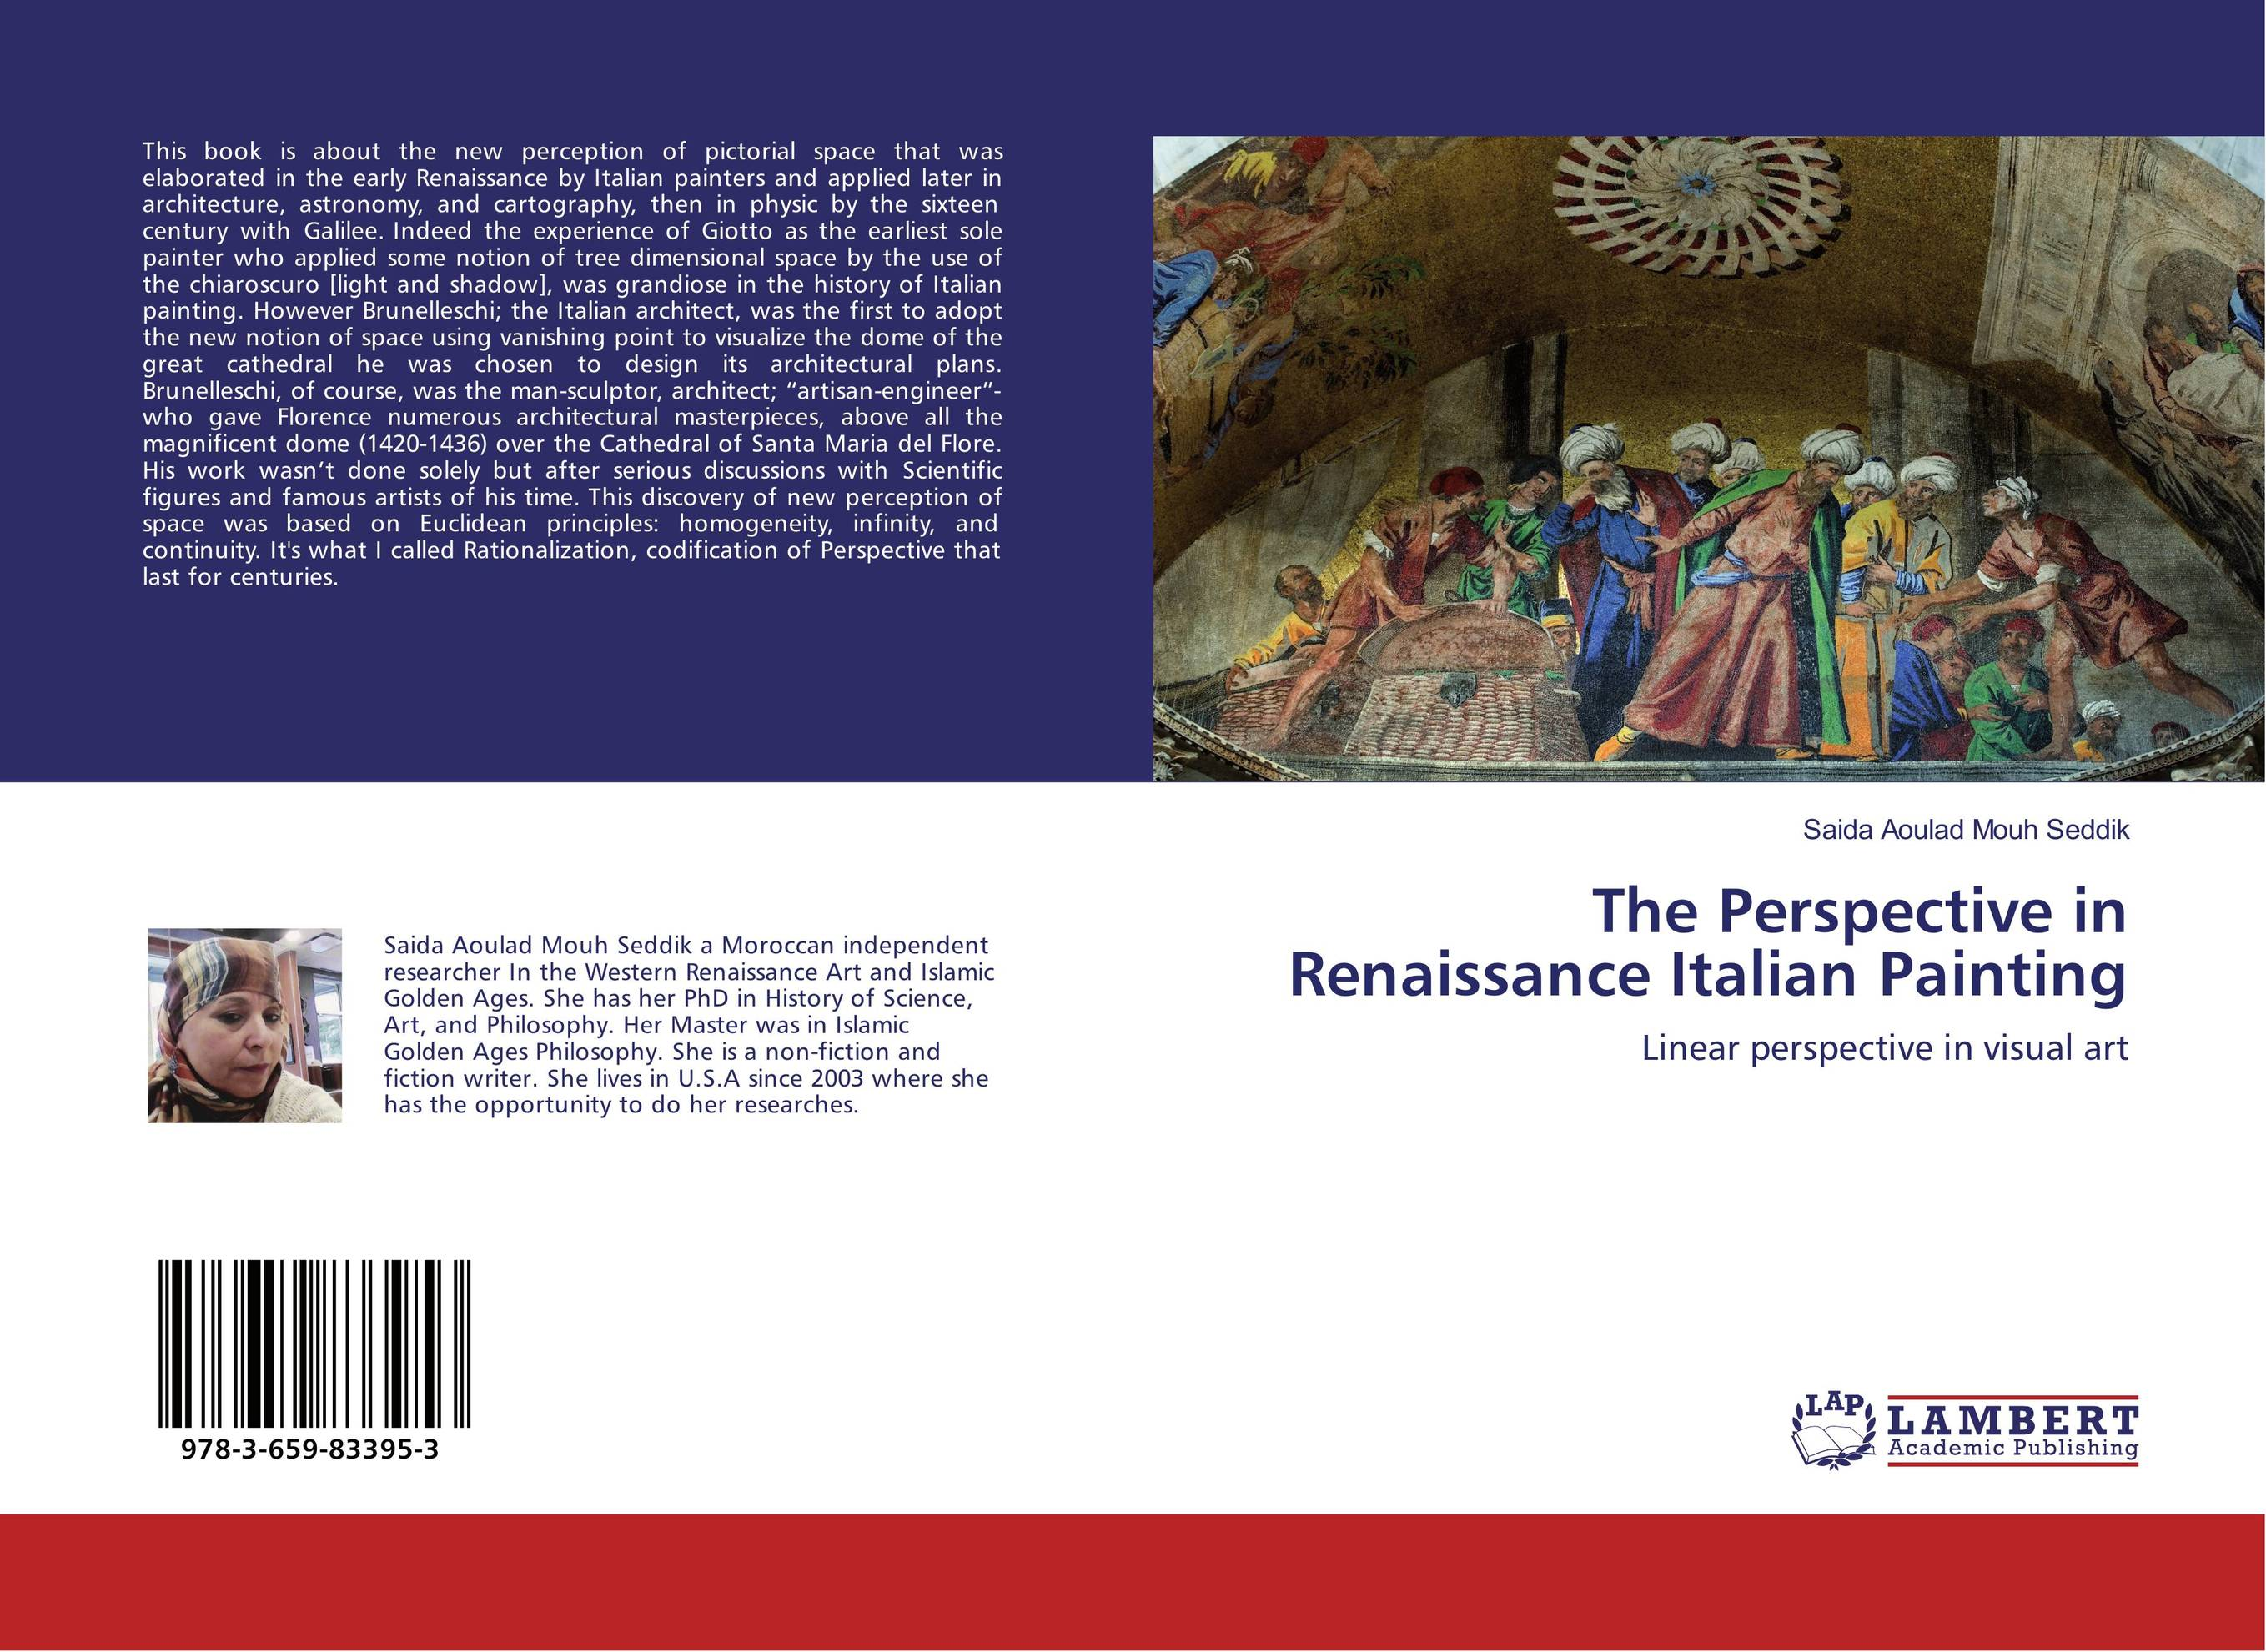 The Perspective in Renaissance Italian Painting the art of the italian renaissance